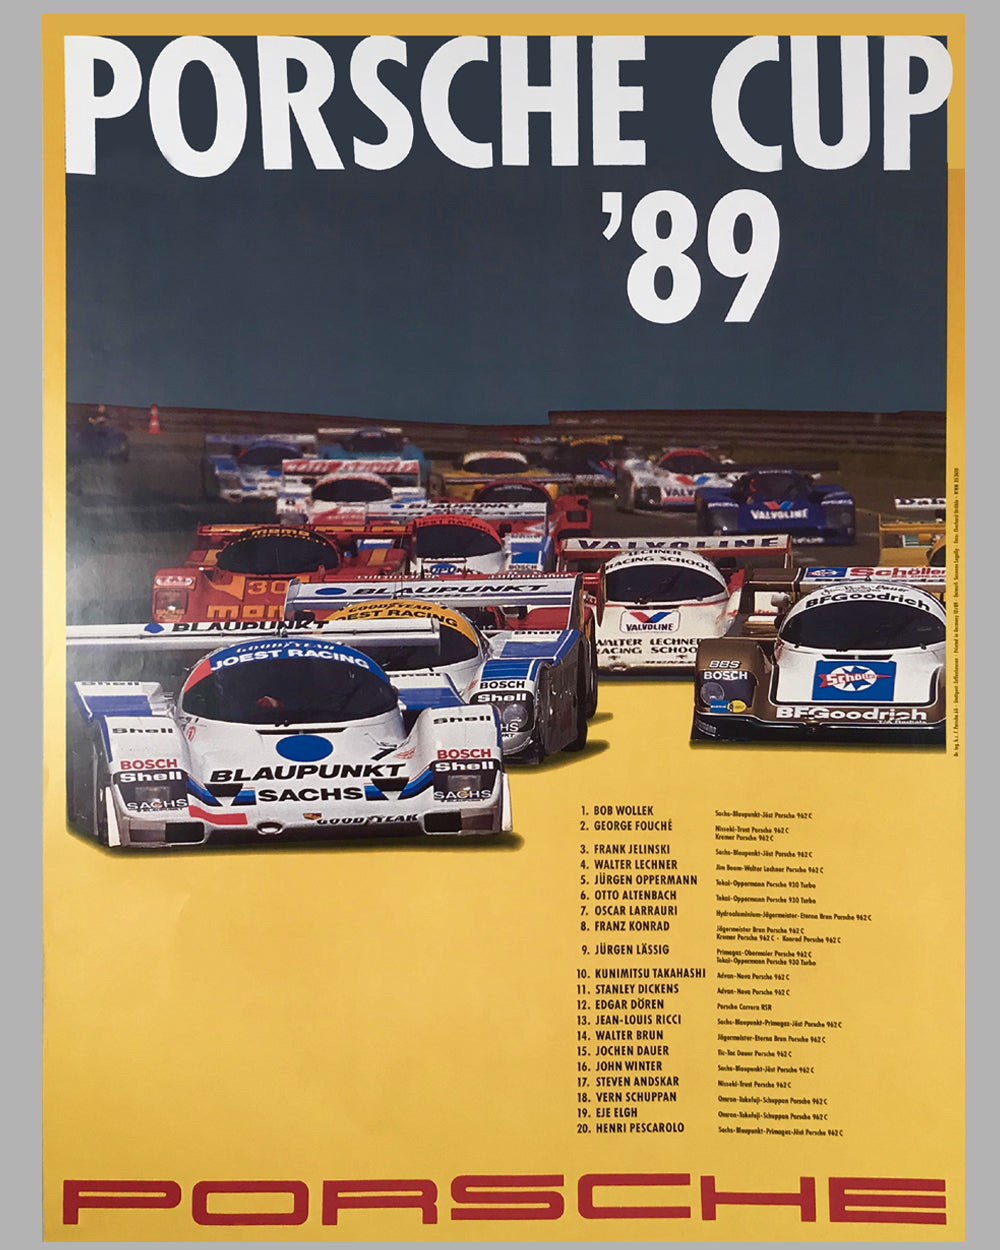 1989 Porsche Cup Victory Poster